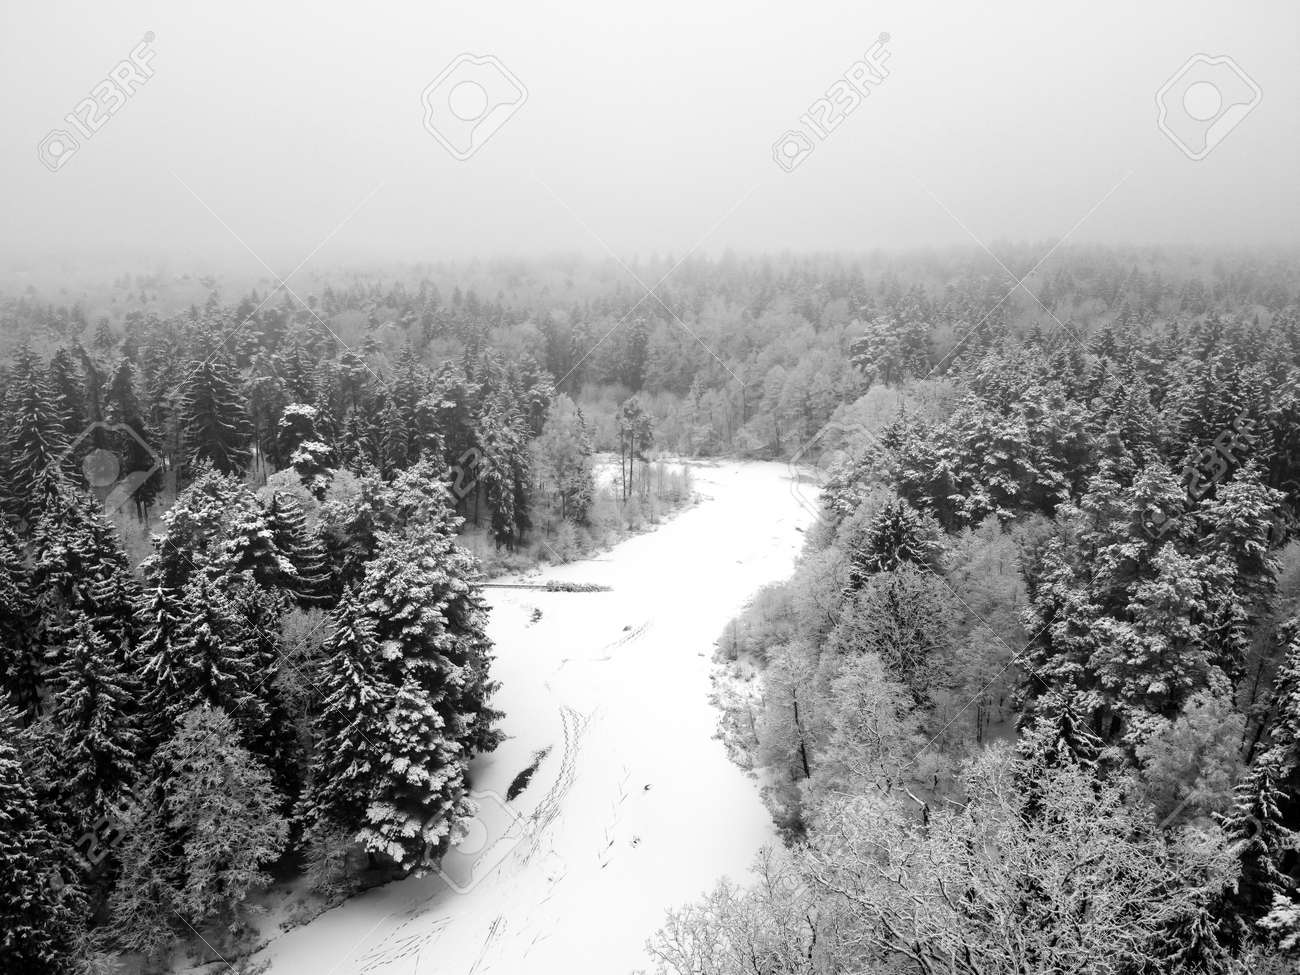 Winter forest with snowy trees, aerial view. Winter nature, aerial landscape with frozen river, trees covered white snow. Black and white photography - 171676192